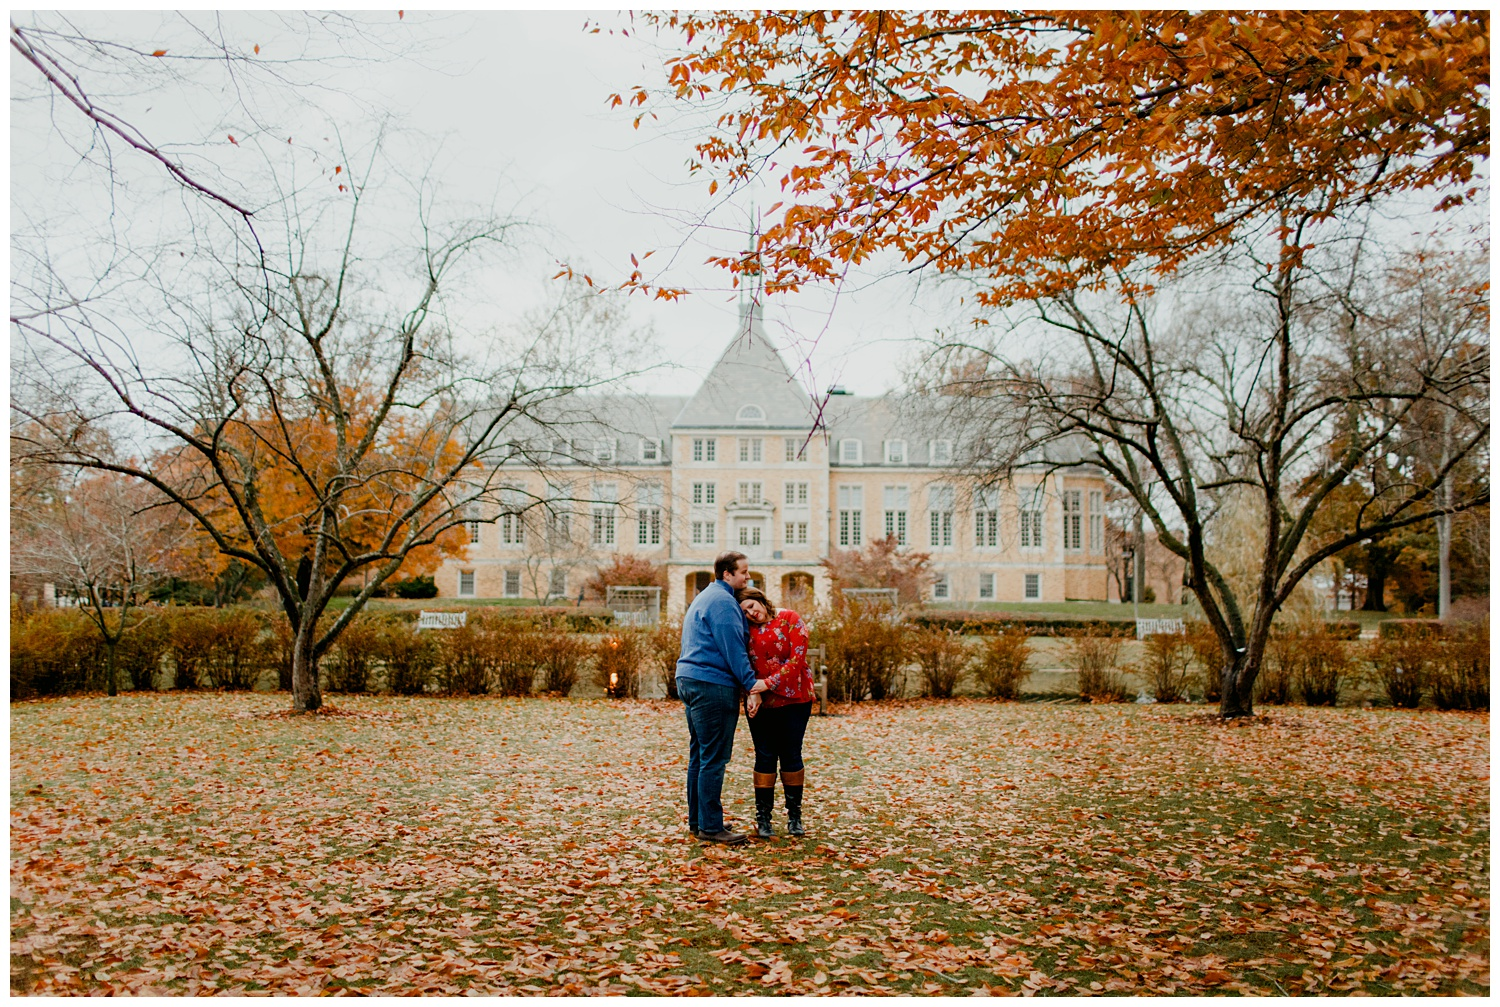 Saint mary's college campus wedding photographer southbend mishawaka granger8.jpg